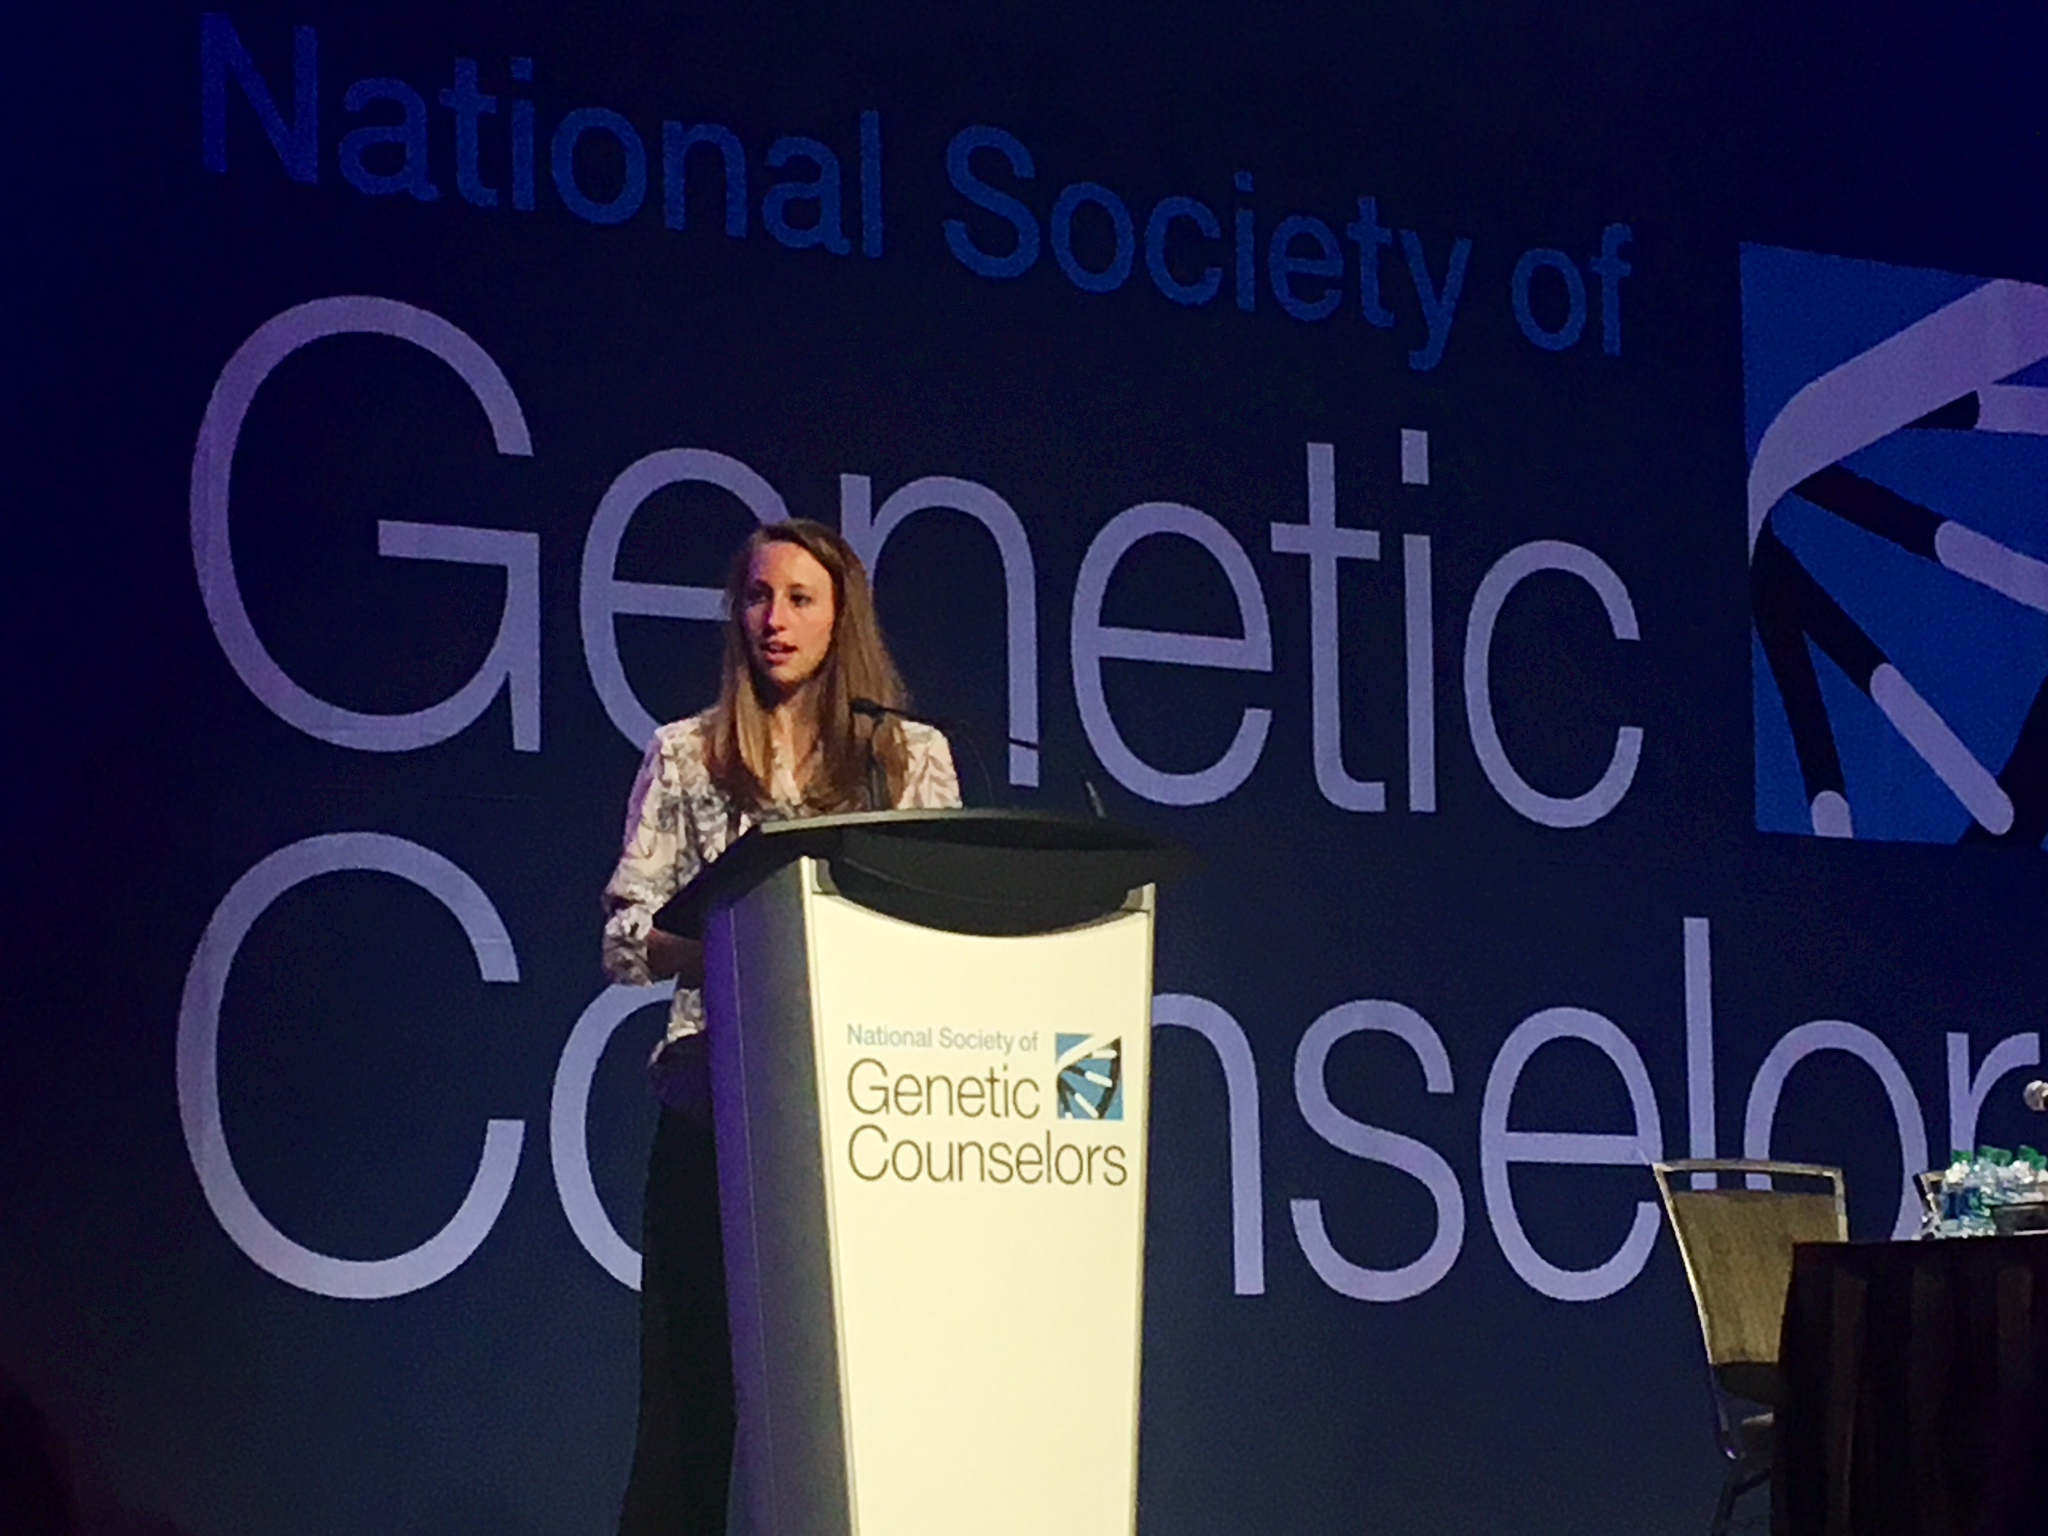 Caitlin Austin, genetic counselor, earns prestigious honor to present at the National Society of Genetic Counselors Annual Education Conference.